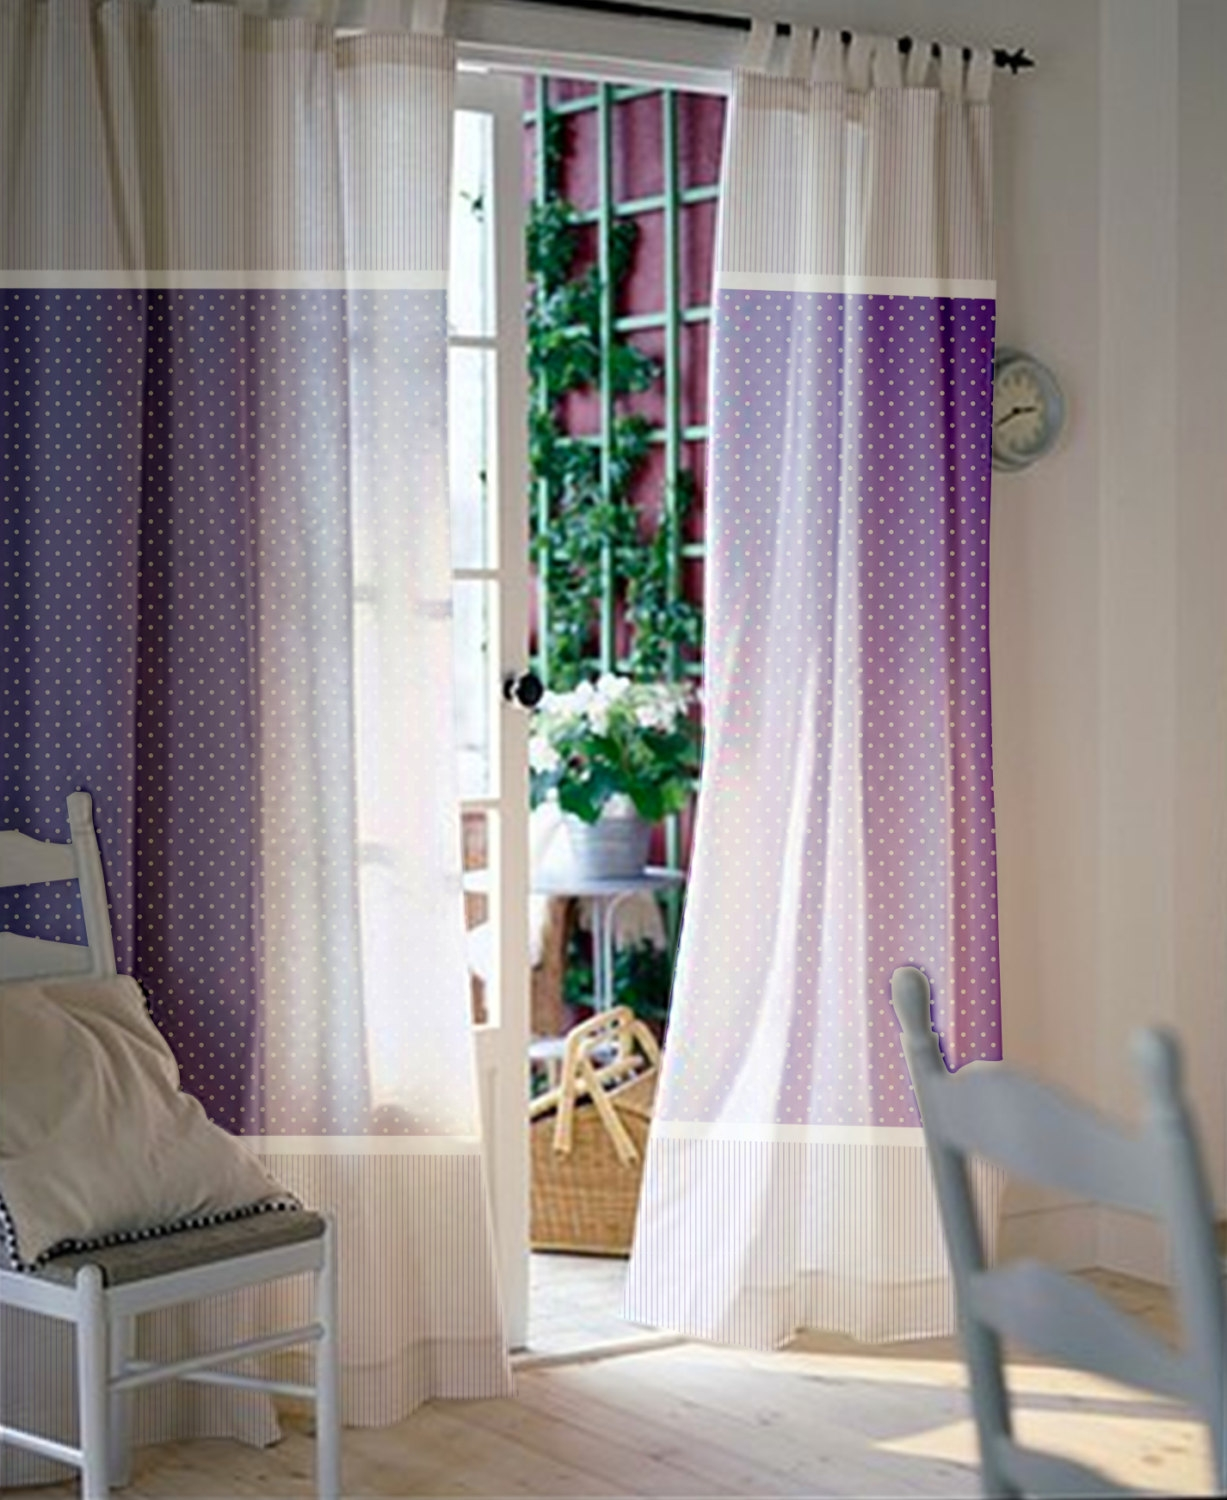 Bedroom Curtain Length Pierpointsprings With Navy And White Polka Dot  Curtains (Image 2 Of 25